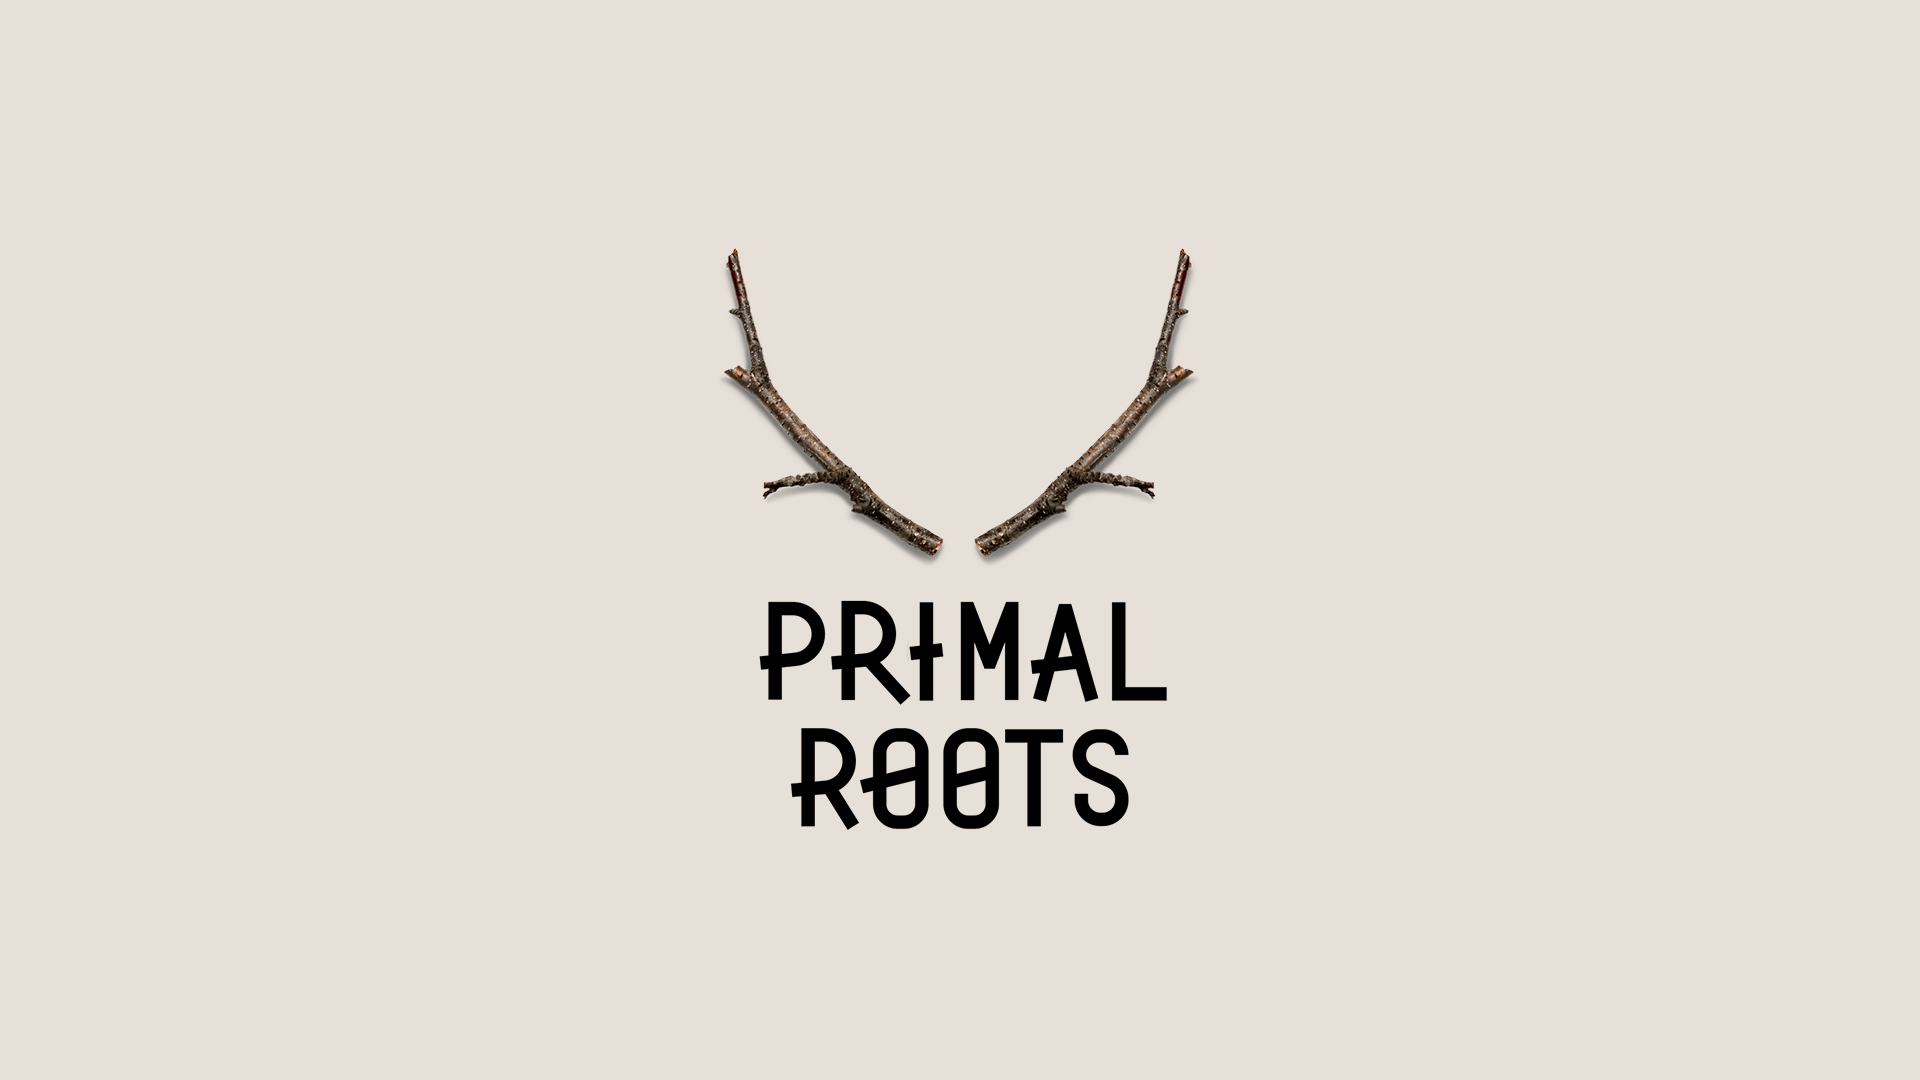 Primal Roots:  Best Strategic or Creative Development of a New Brand and Best Visual Identity by a Charity, NGO or Not-For-Profit